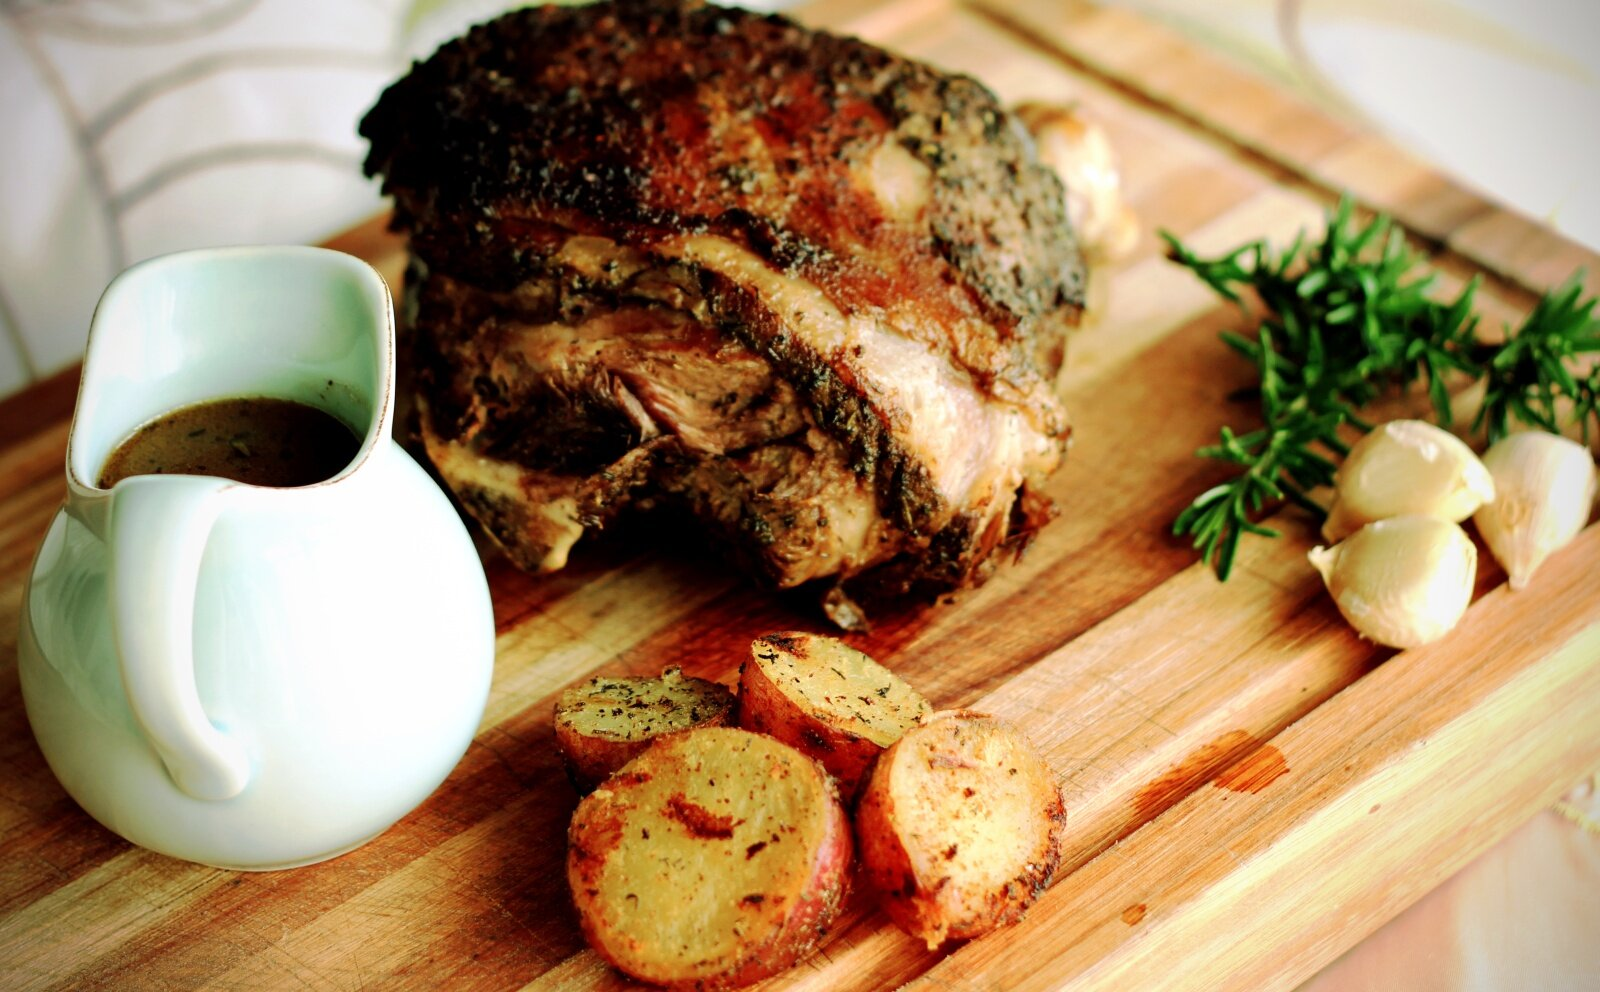 Slow roast leg of lamb rosemary garlic smoked paprica rub